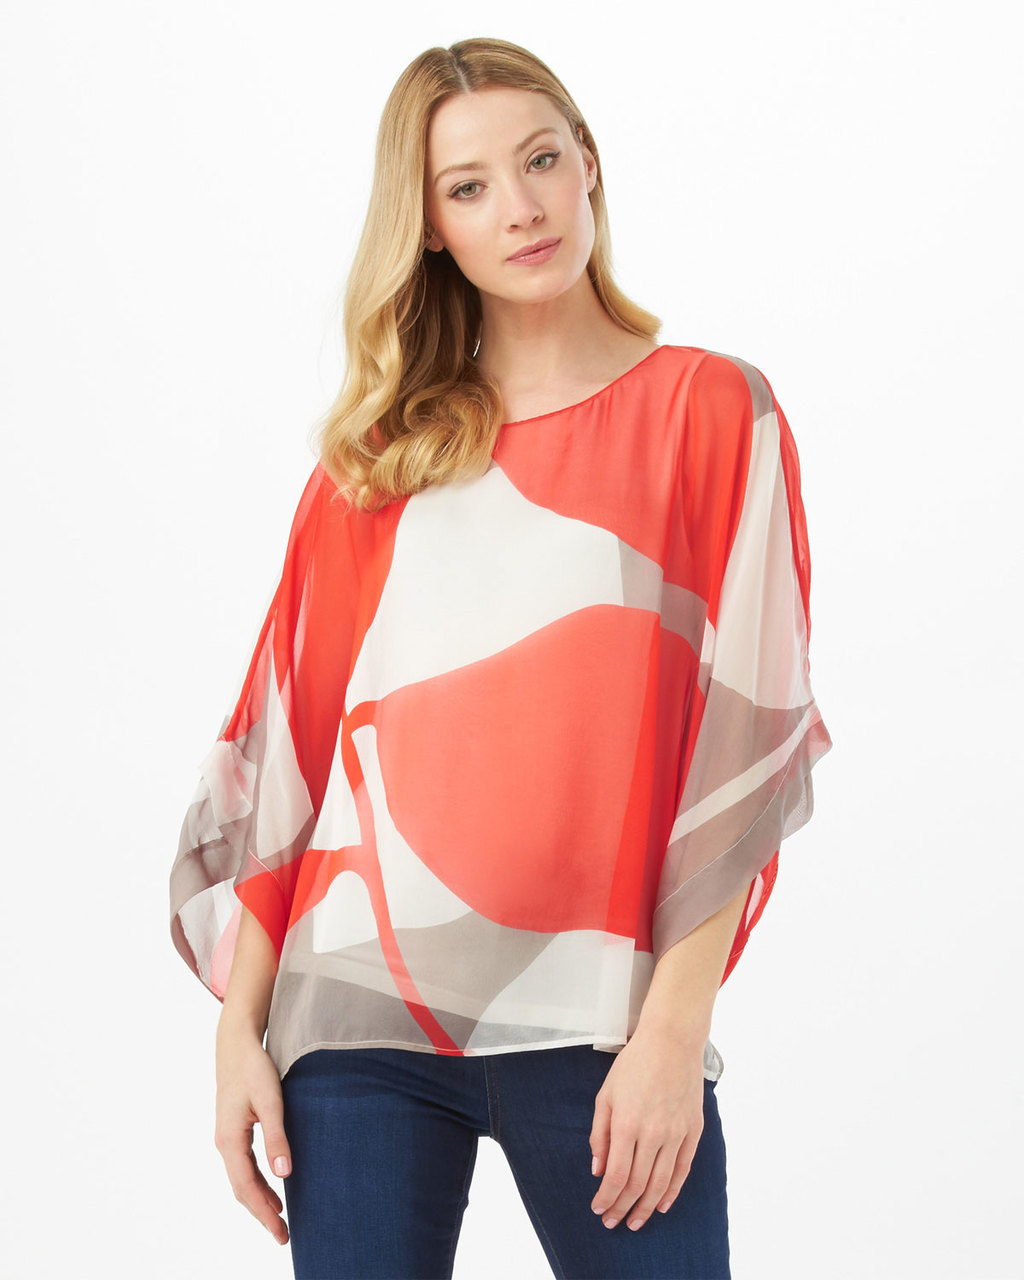 Esmerelda Print Silk Blouse - neckline: round neck; sleeve style: angel/waterfall; style: blouse; predominant colour: ivory/cream; secondary colour: bright orange; occasions: evening, creative work; length: standard; fibres: silk - 100%; fit: loose; sleeve length: 3/4 length; texture group: silky - light; pattern type: fabric; pattern: patterned/print; pattern size: big & busy (top); season: s/s 2016; wardrobe: highlight